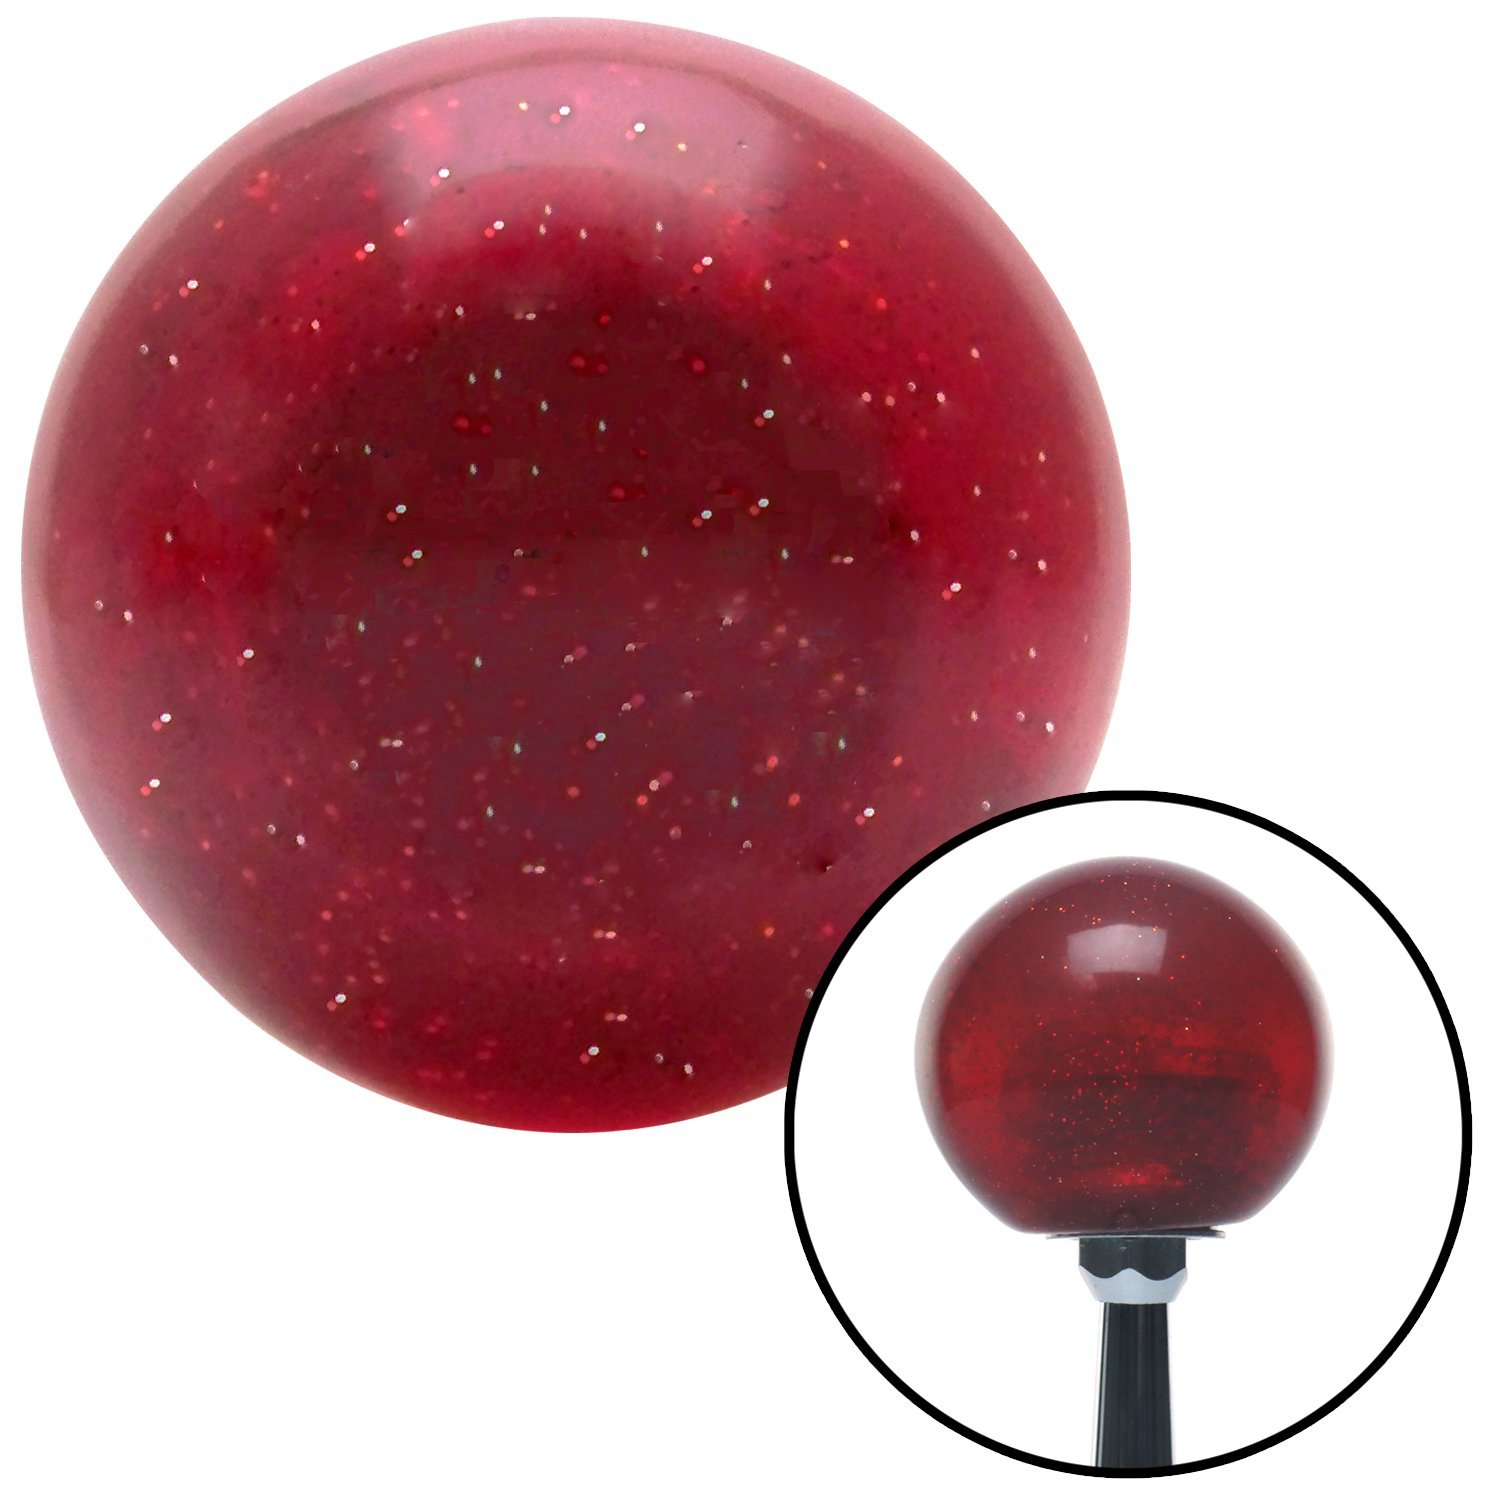 American Shifter 83623 Sparkle Red Metal Flake Shift Knob with M16 x 1.5 Insert Round Metal Flake